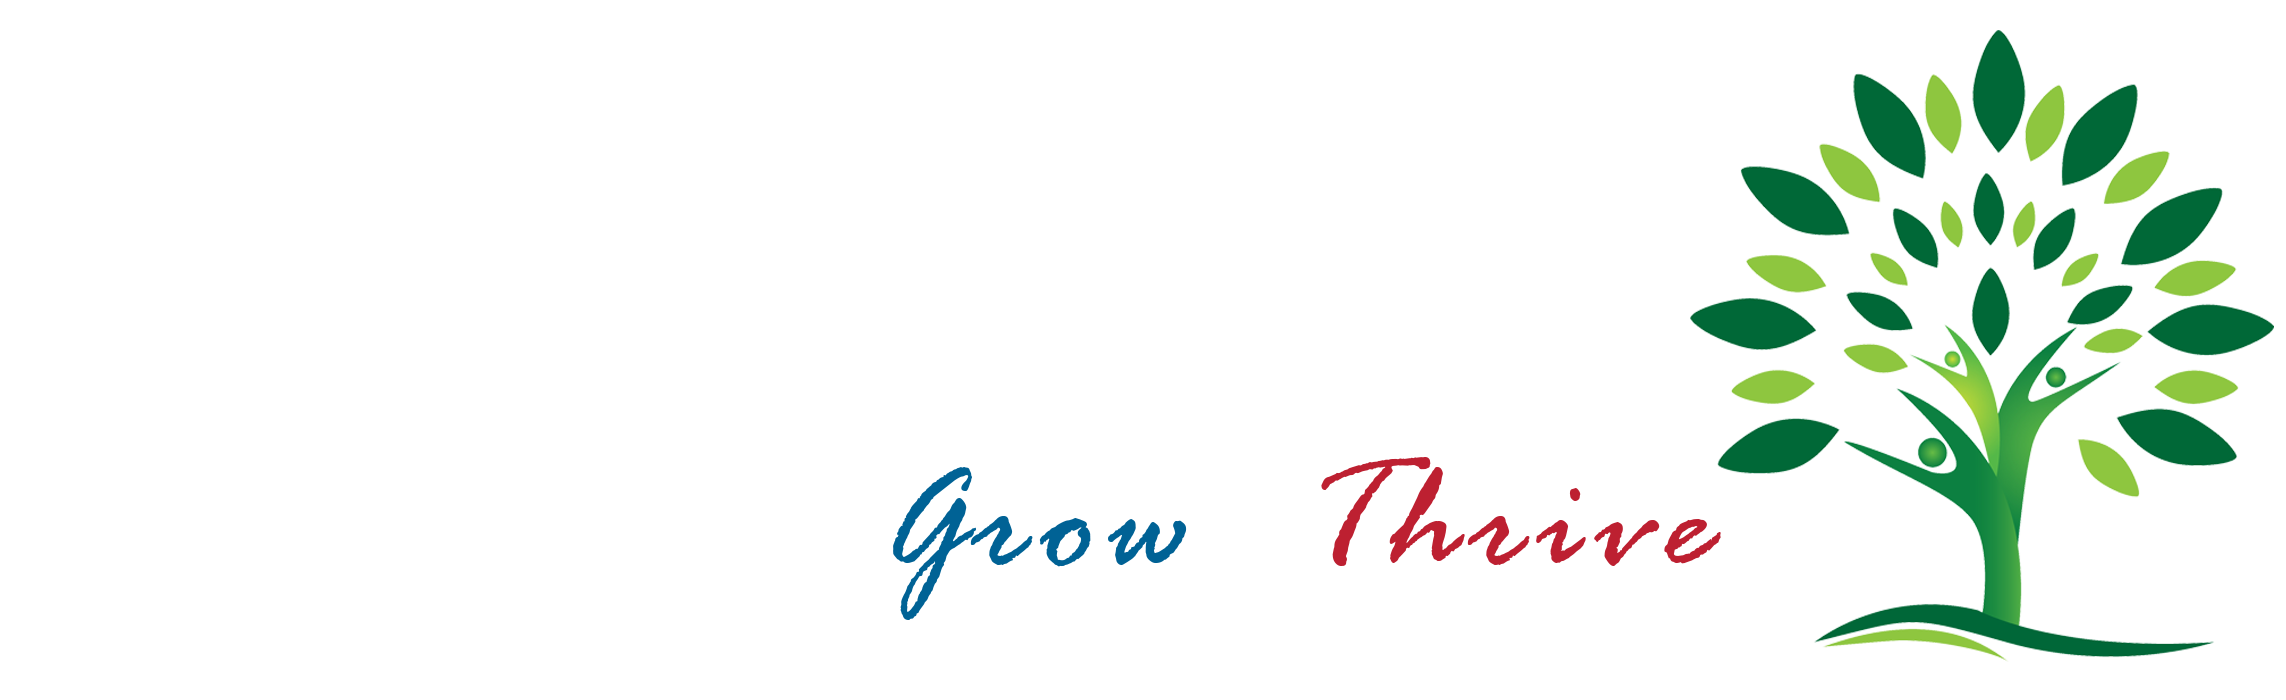 Nicolay Kreidler Consulting